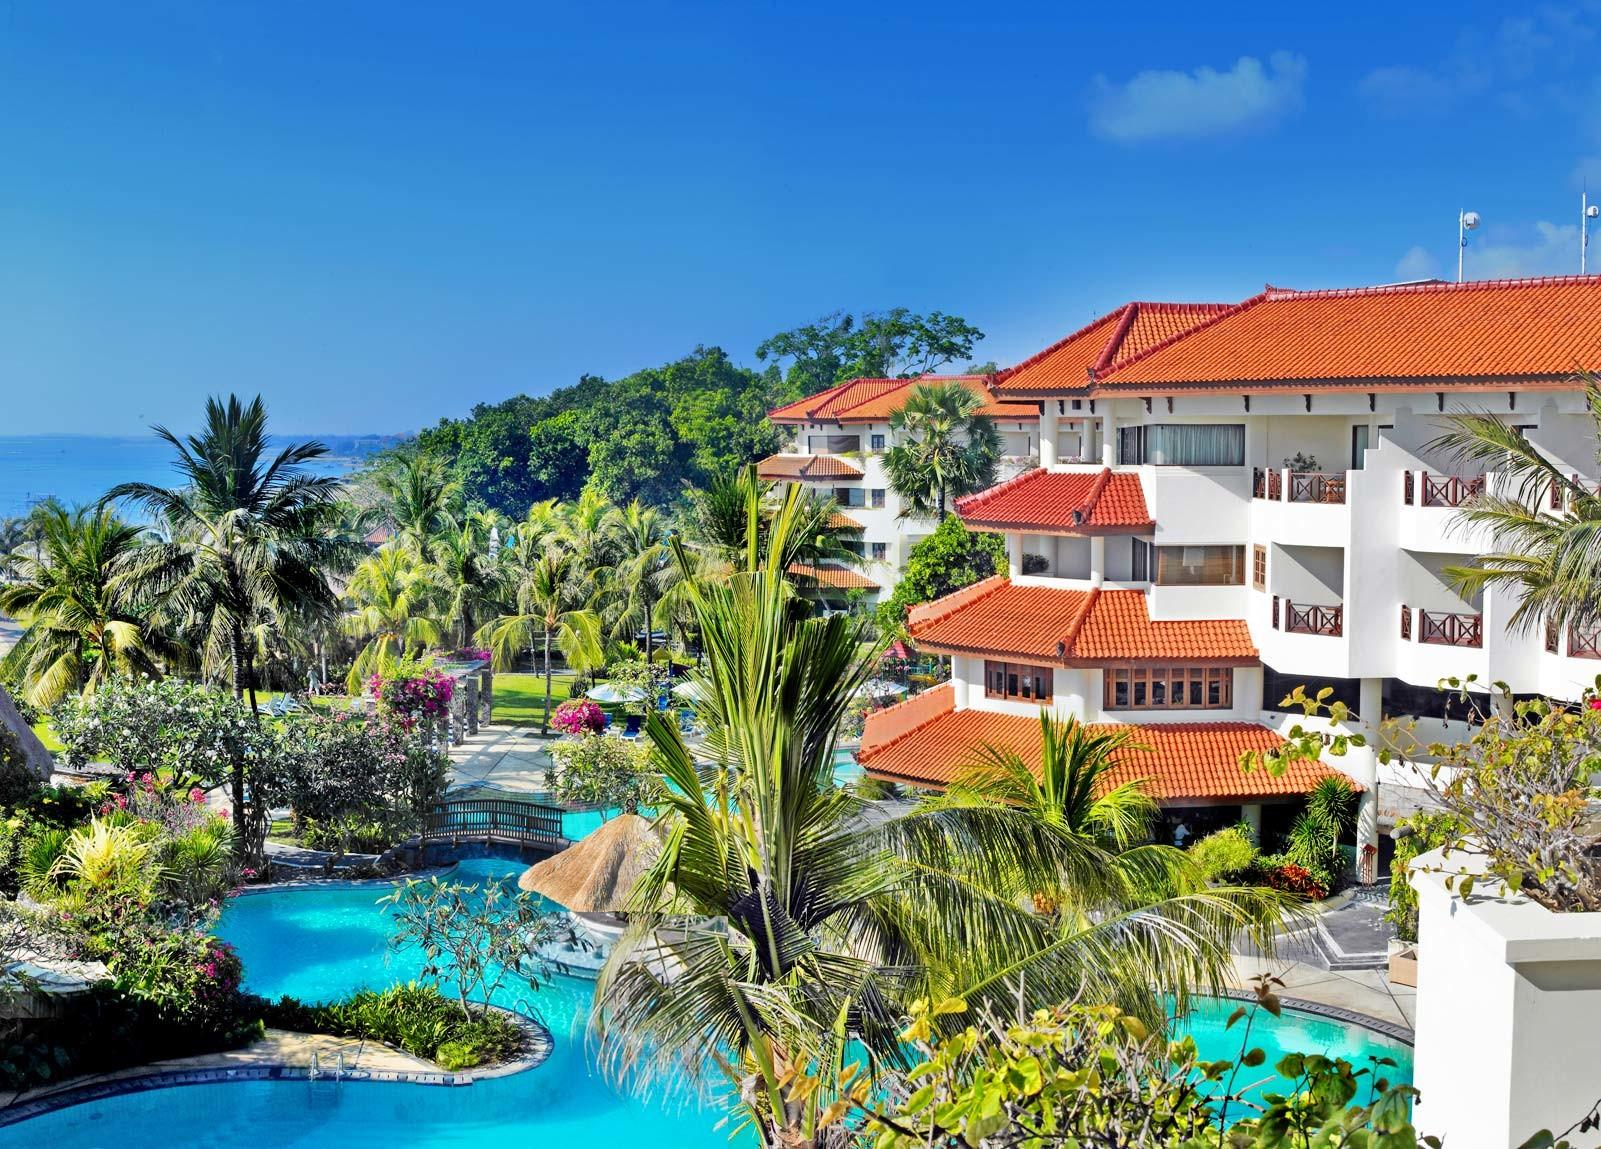 Bali All Inclusive Resorts Luxury